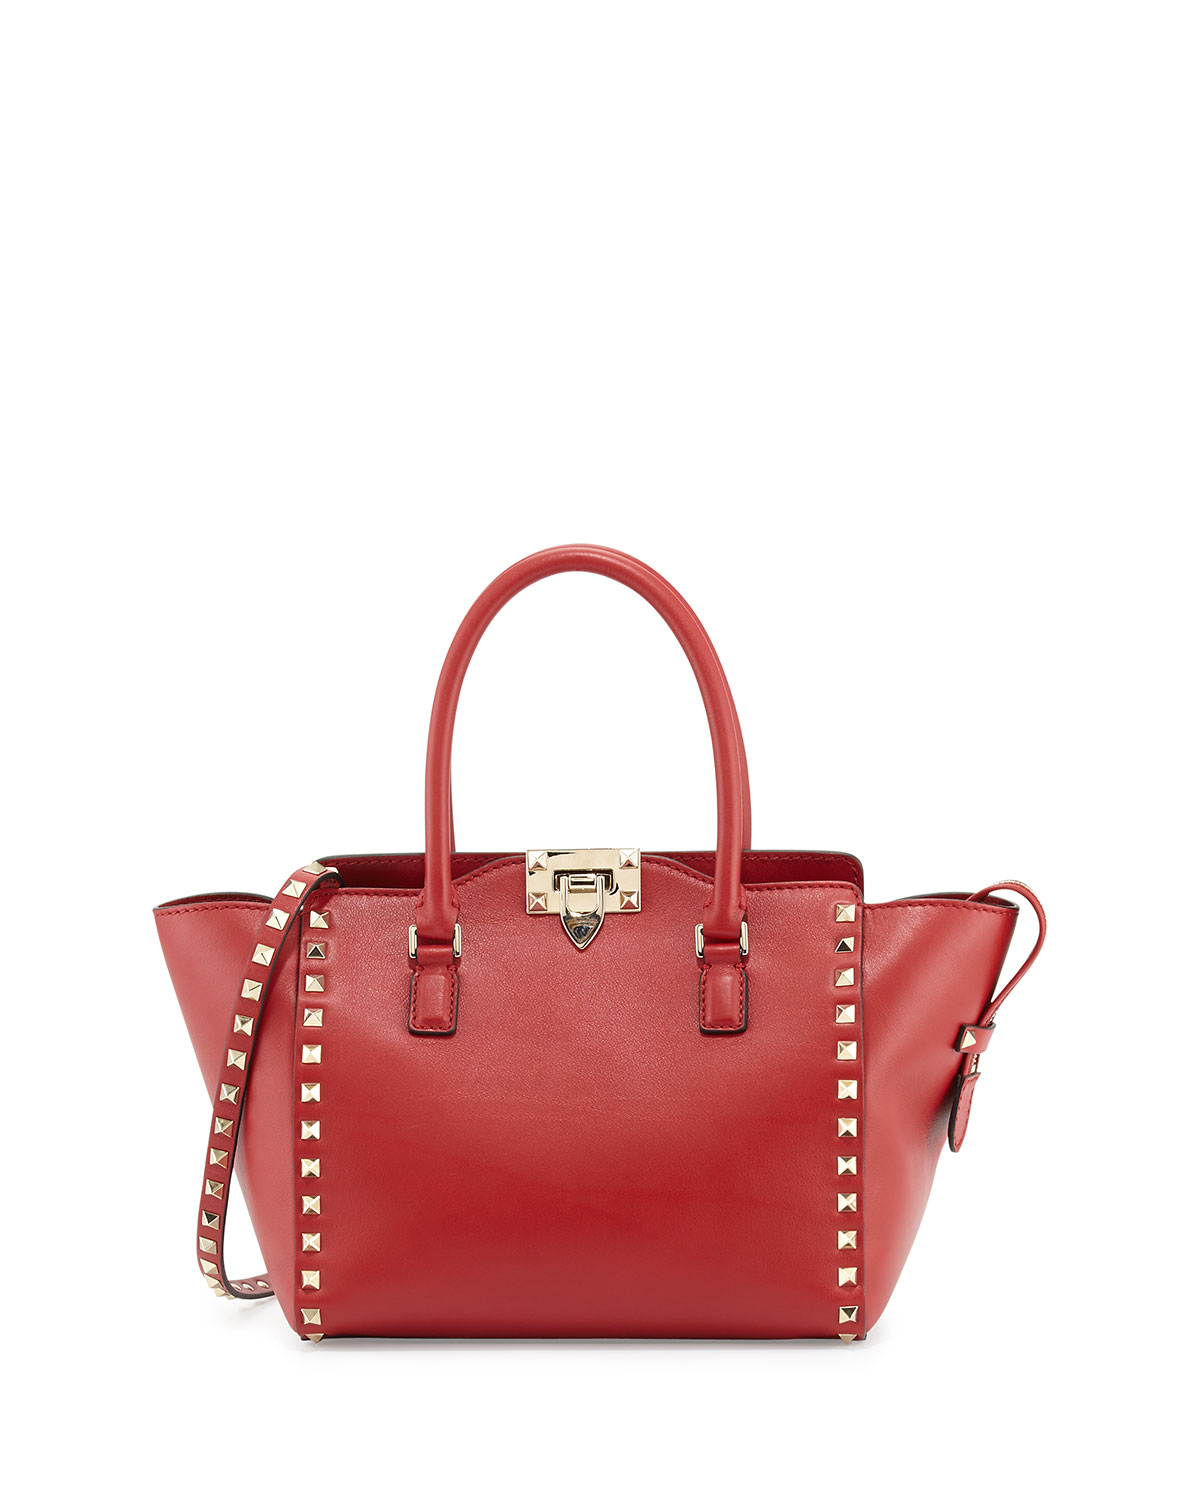 Handle tote bag, rosso (red)